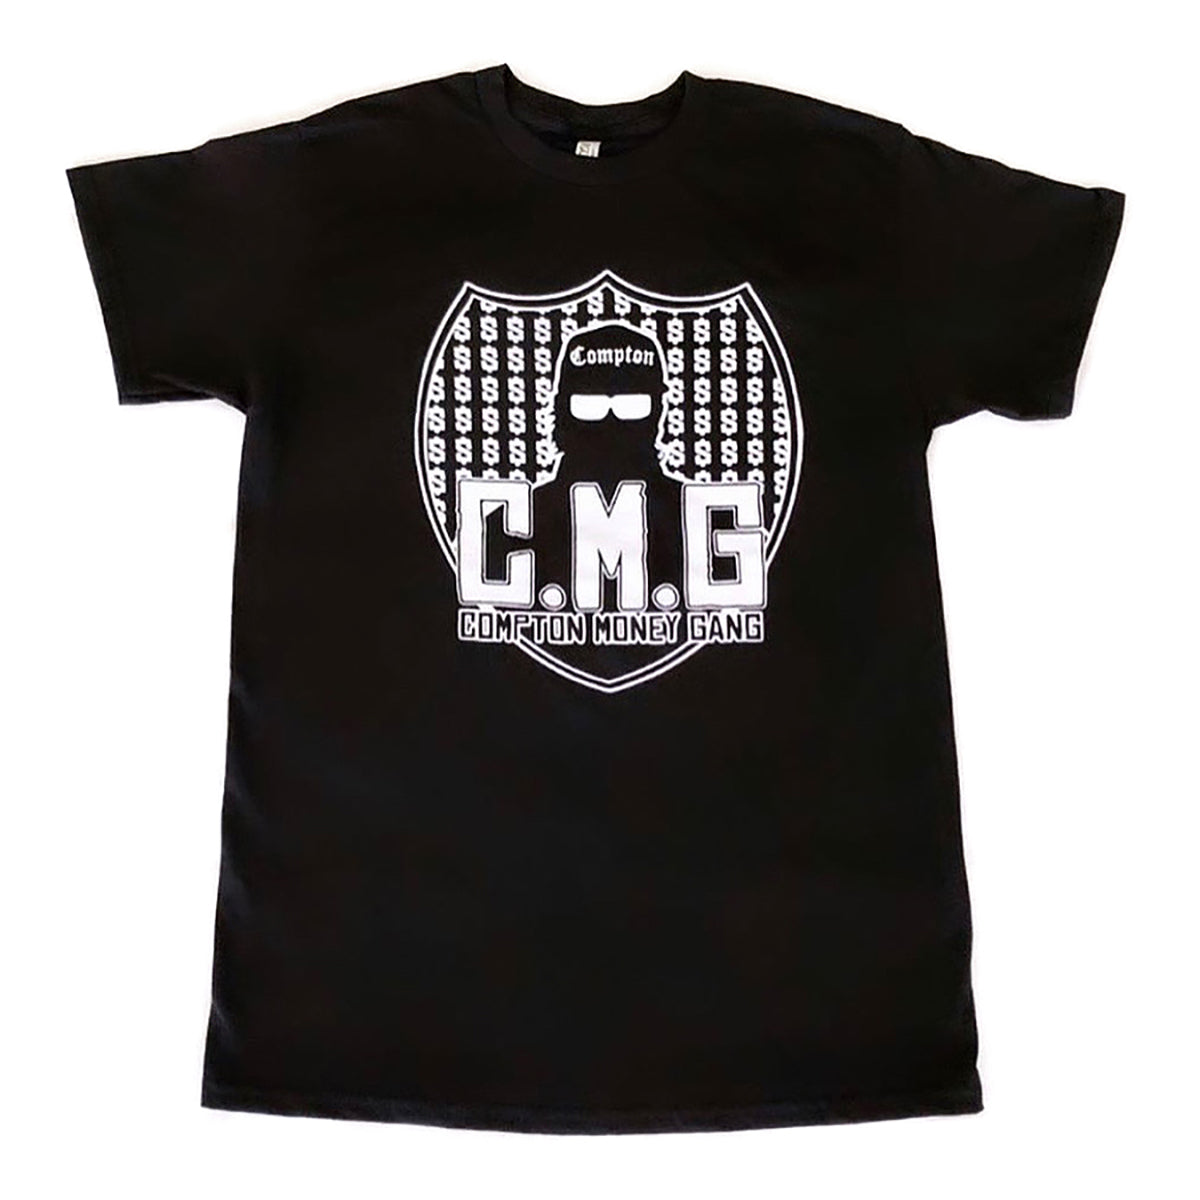 Compton Money Gang T-Shirt (Black)